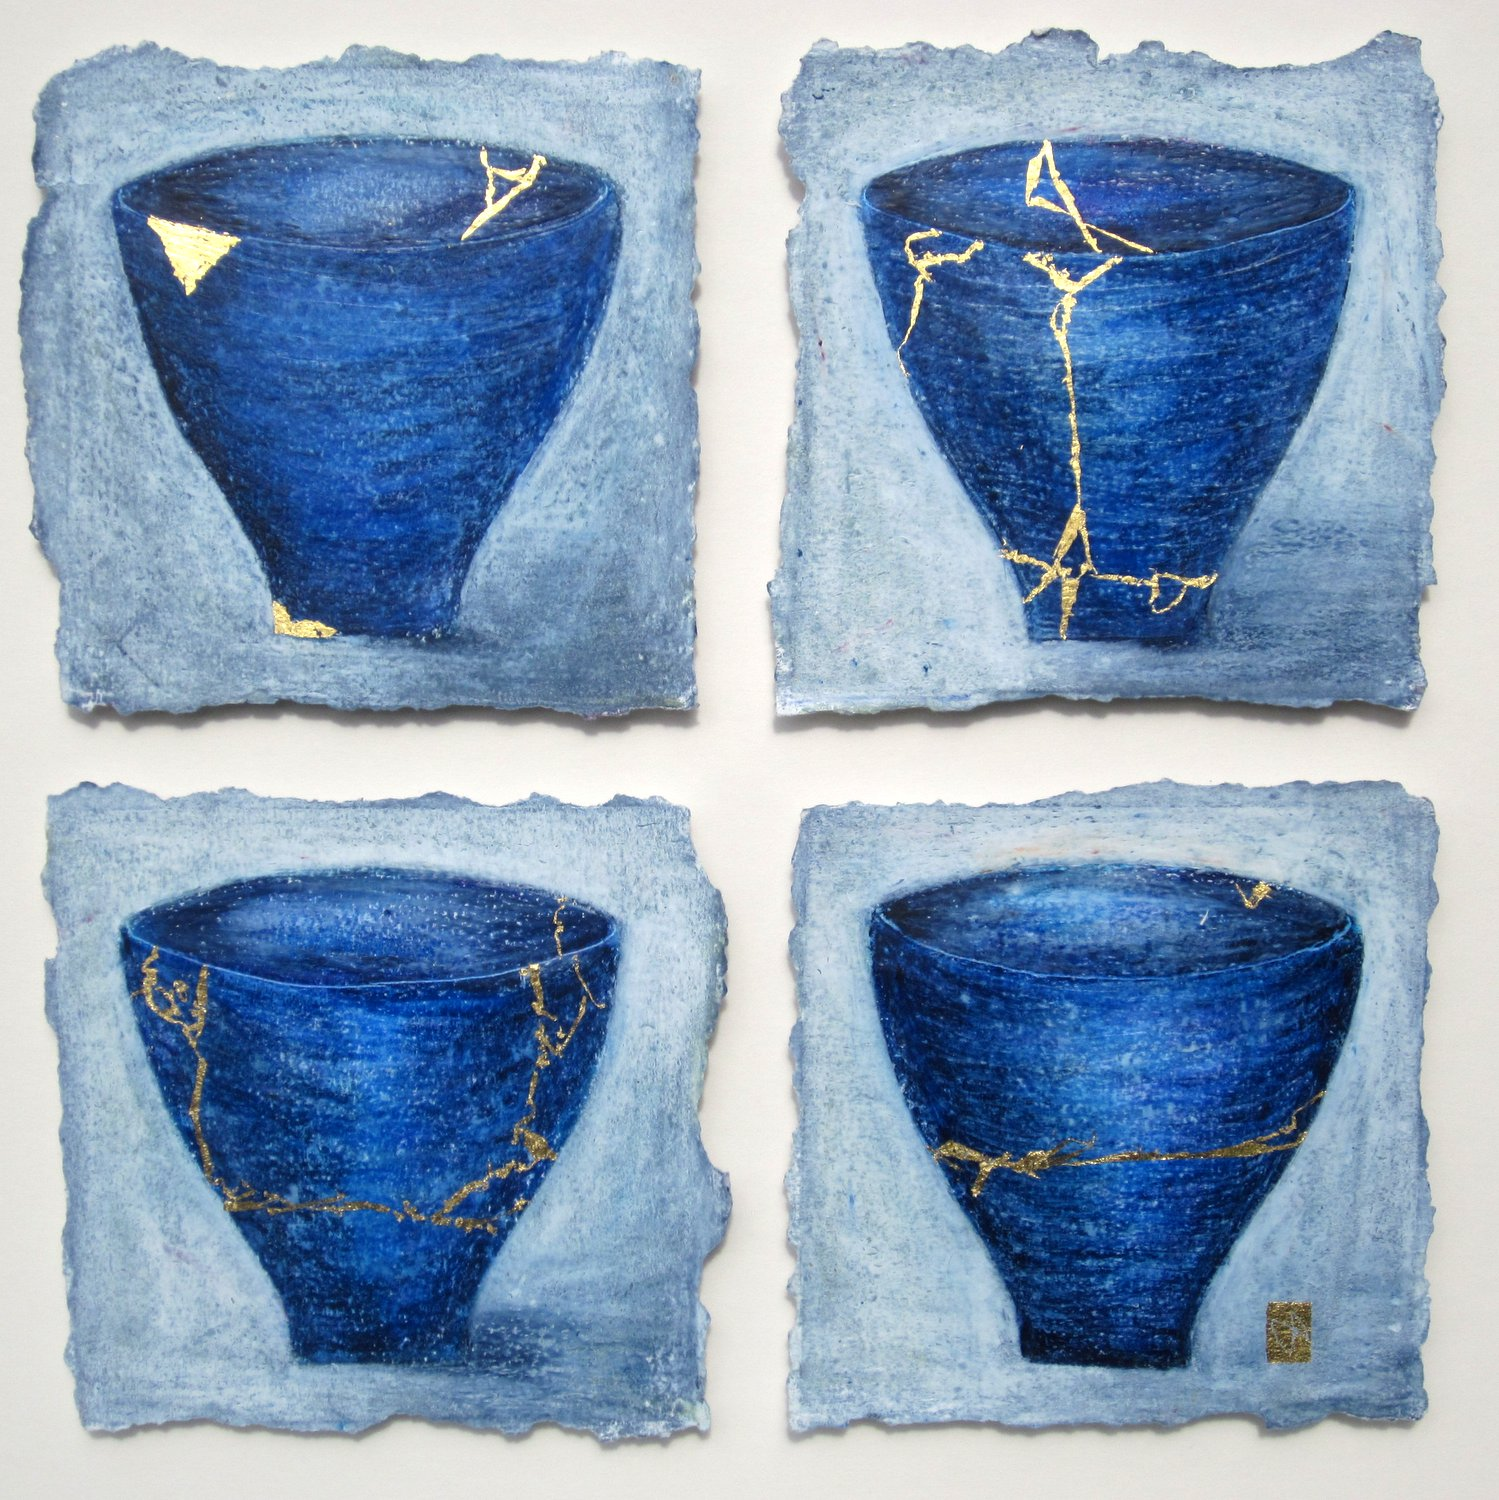 Four blue kintsugi tea bowls with gold repair